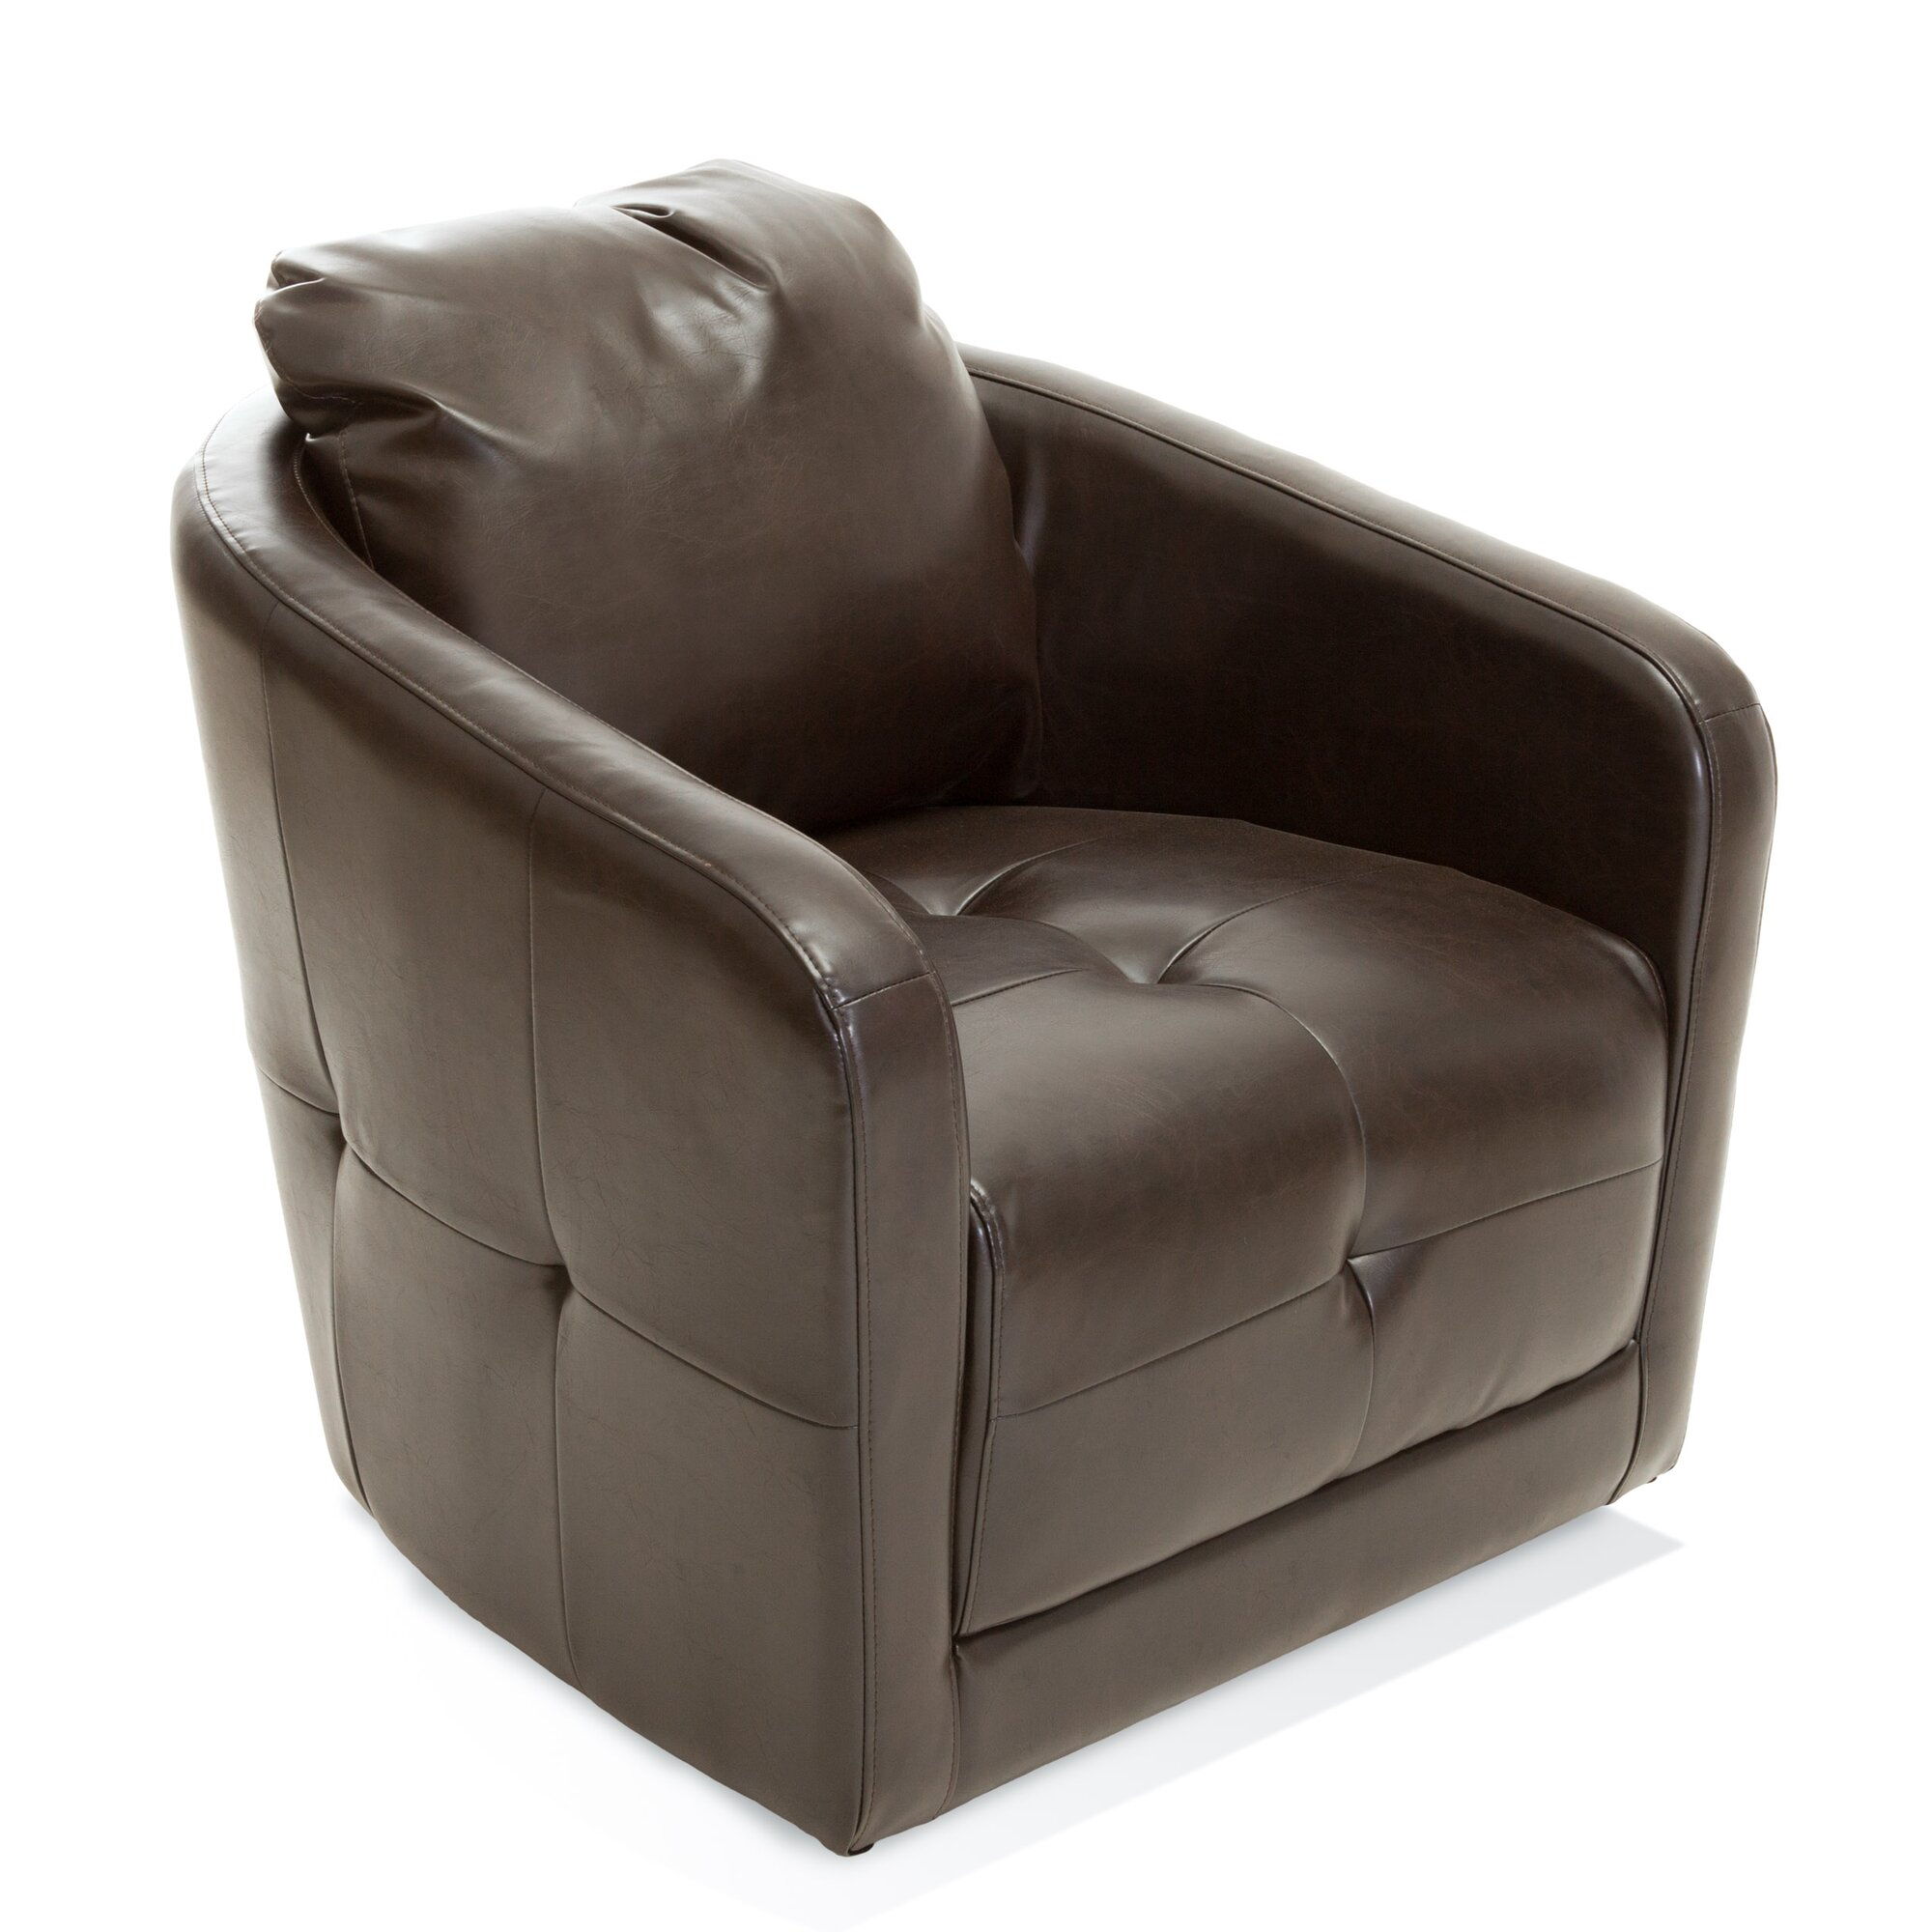 furniture seating armchairs amp club chairs berkeley swivel club chair home loft concepts concordia swivel